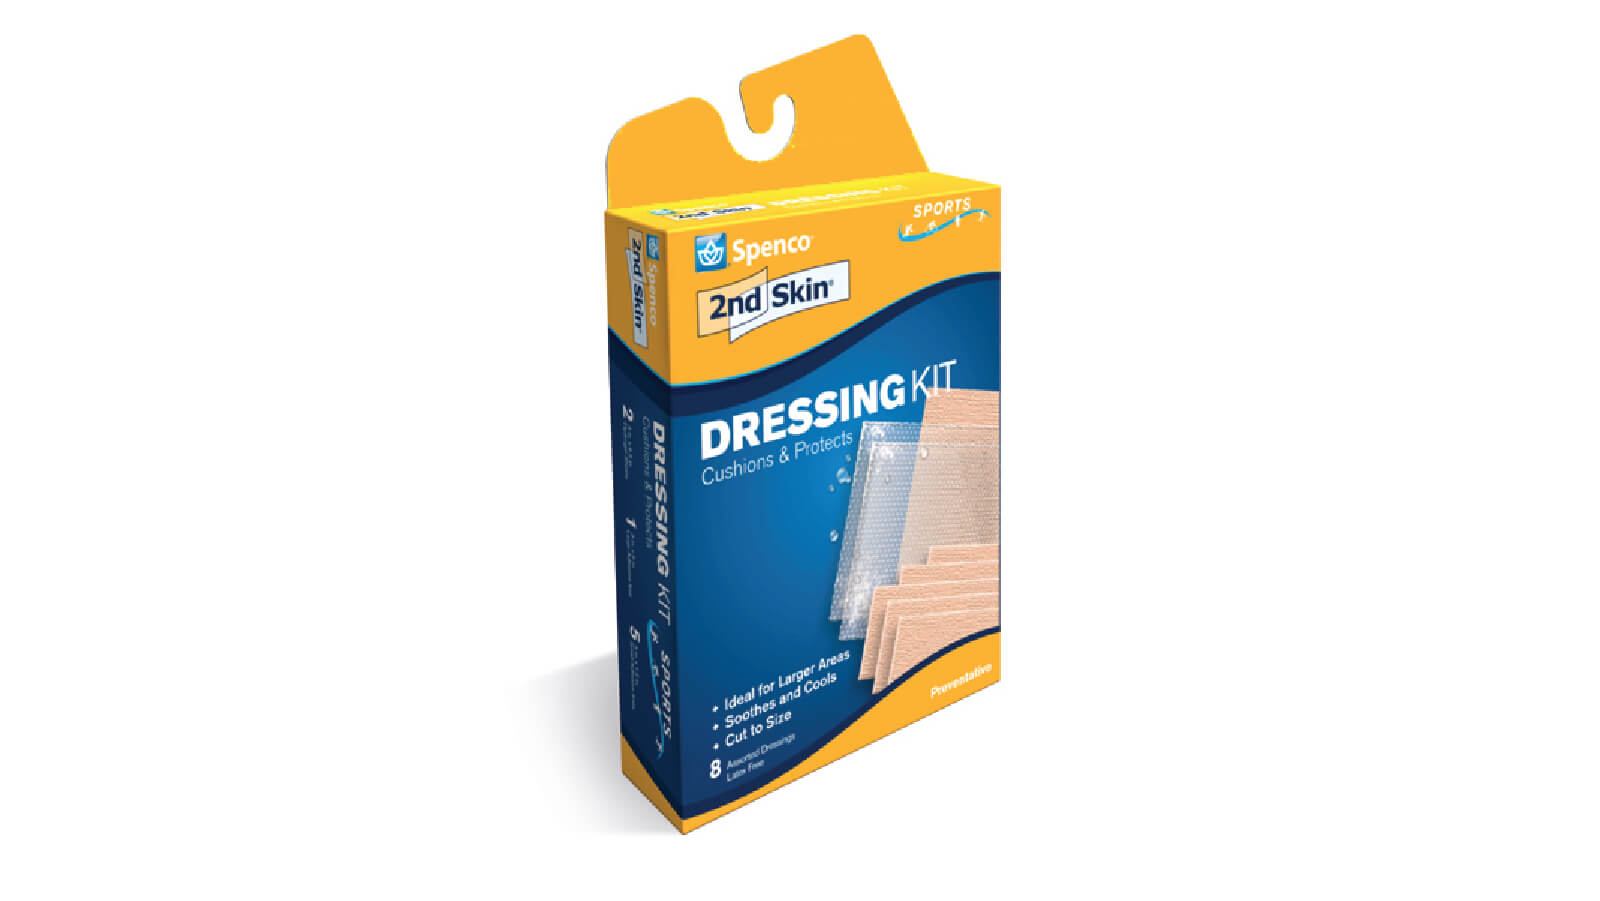 Spenco 2nd skin dressing kit bandages for blister protection in packaging